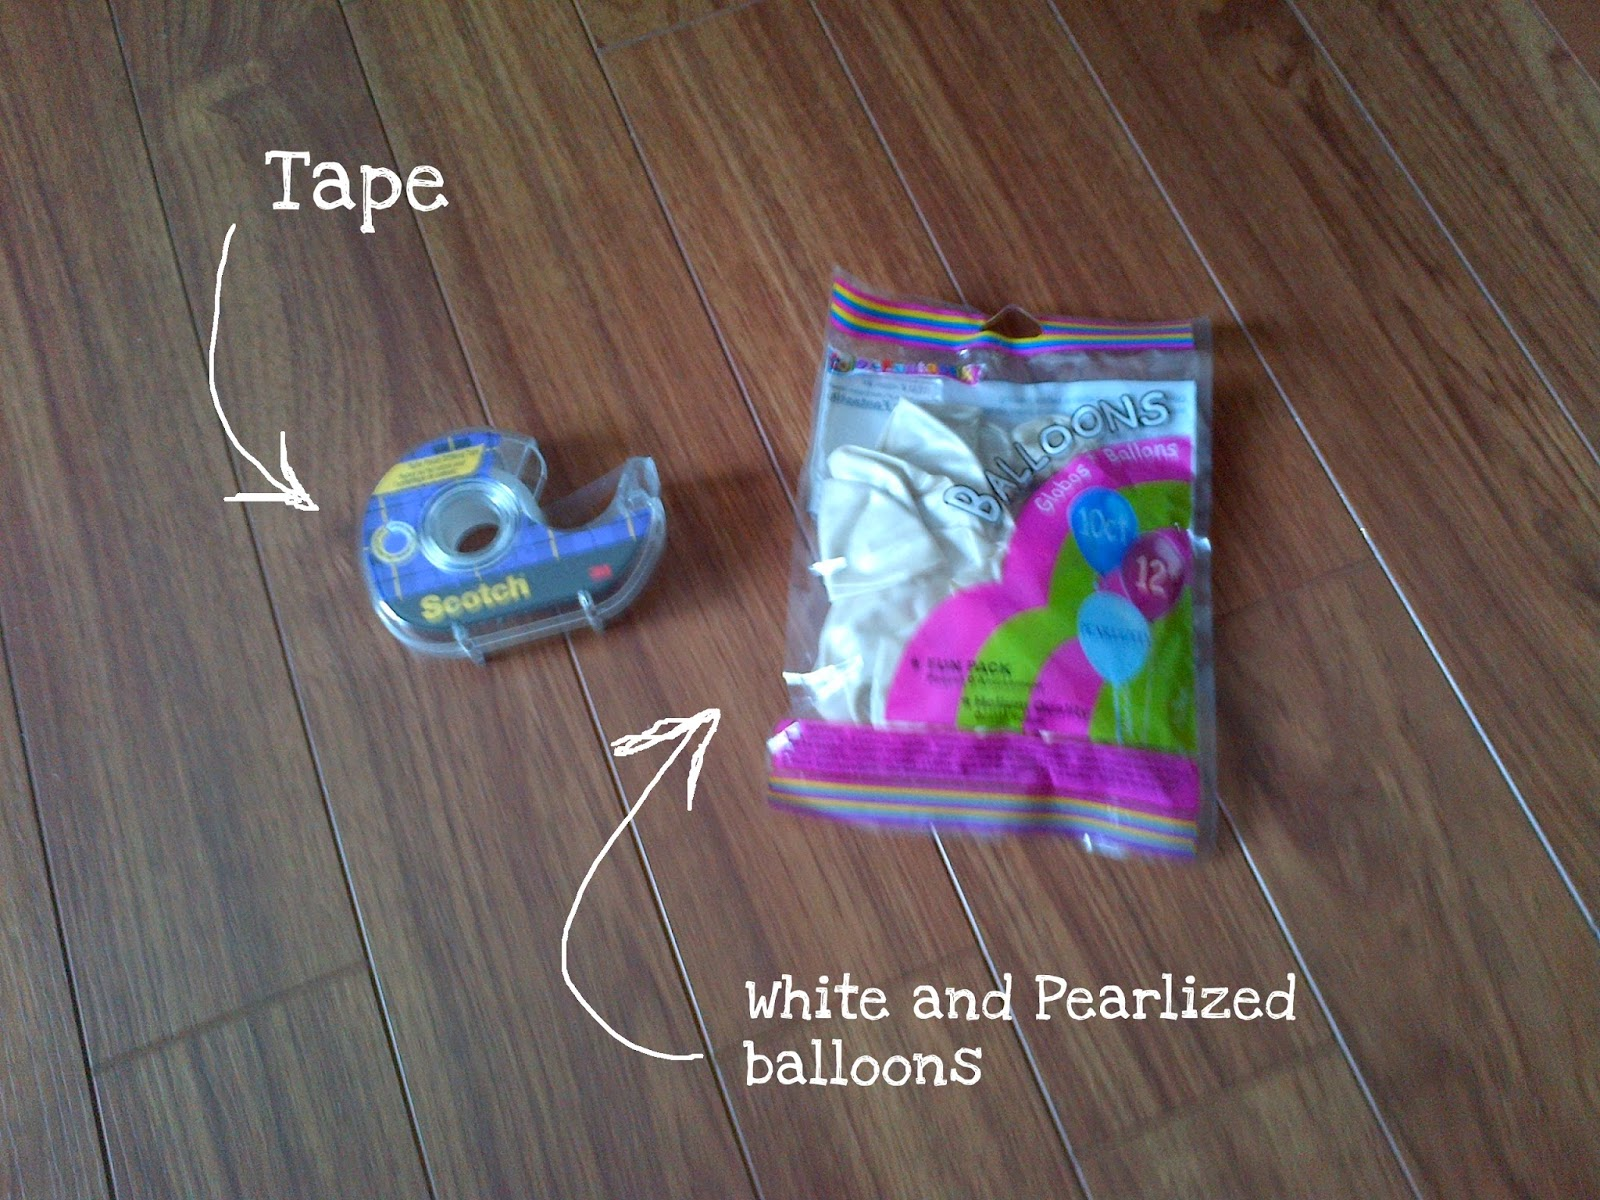 Creating This Look Is Fairly Easy But There Are Some Small Tips To Help You Make It Perfect First Blow Up The Balloons In Roughly Three Different Sizes